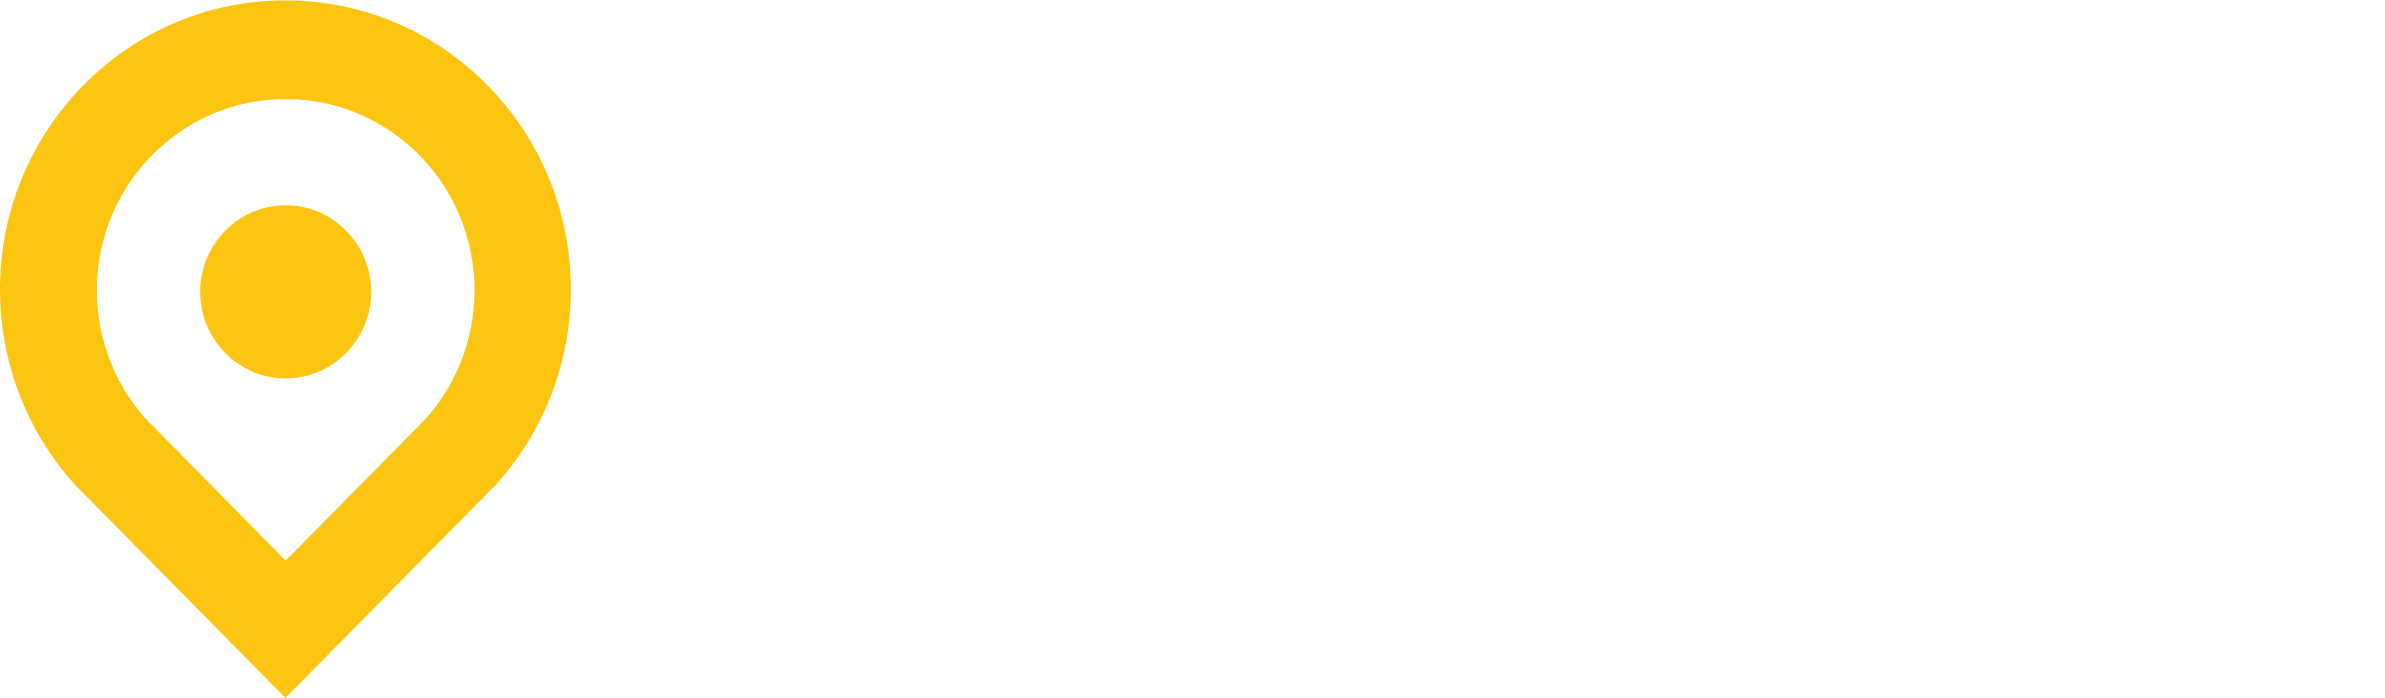 Intuitive Shipping Application Logo